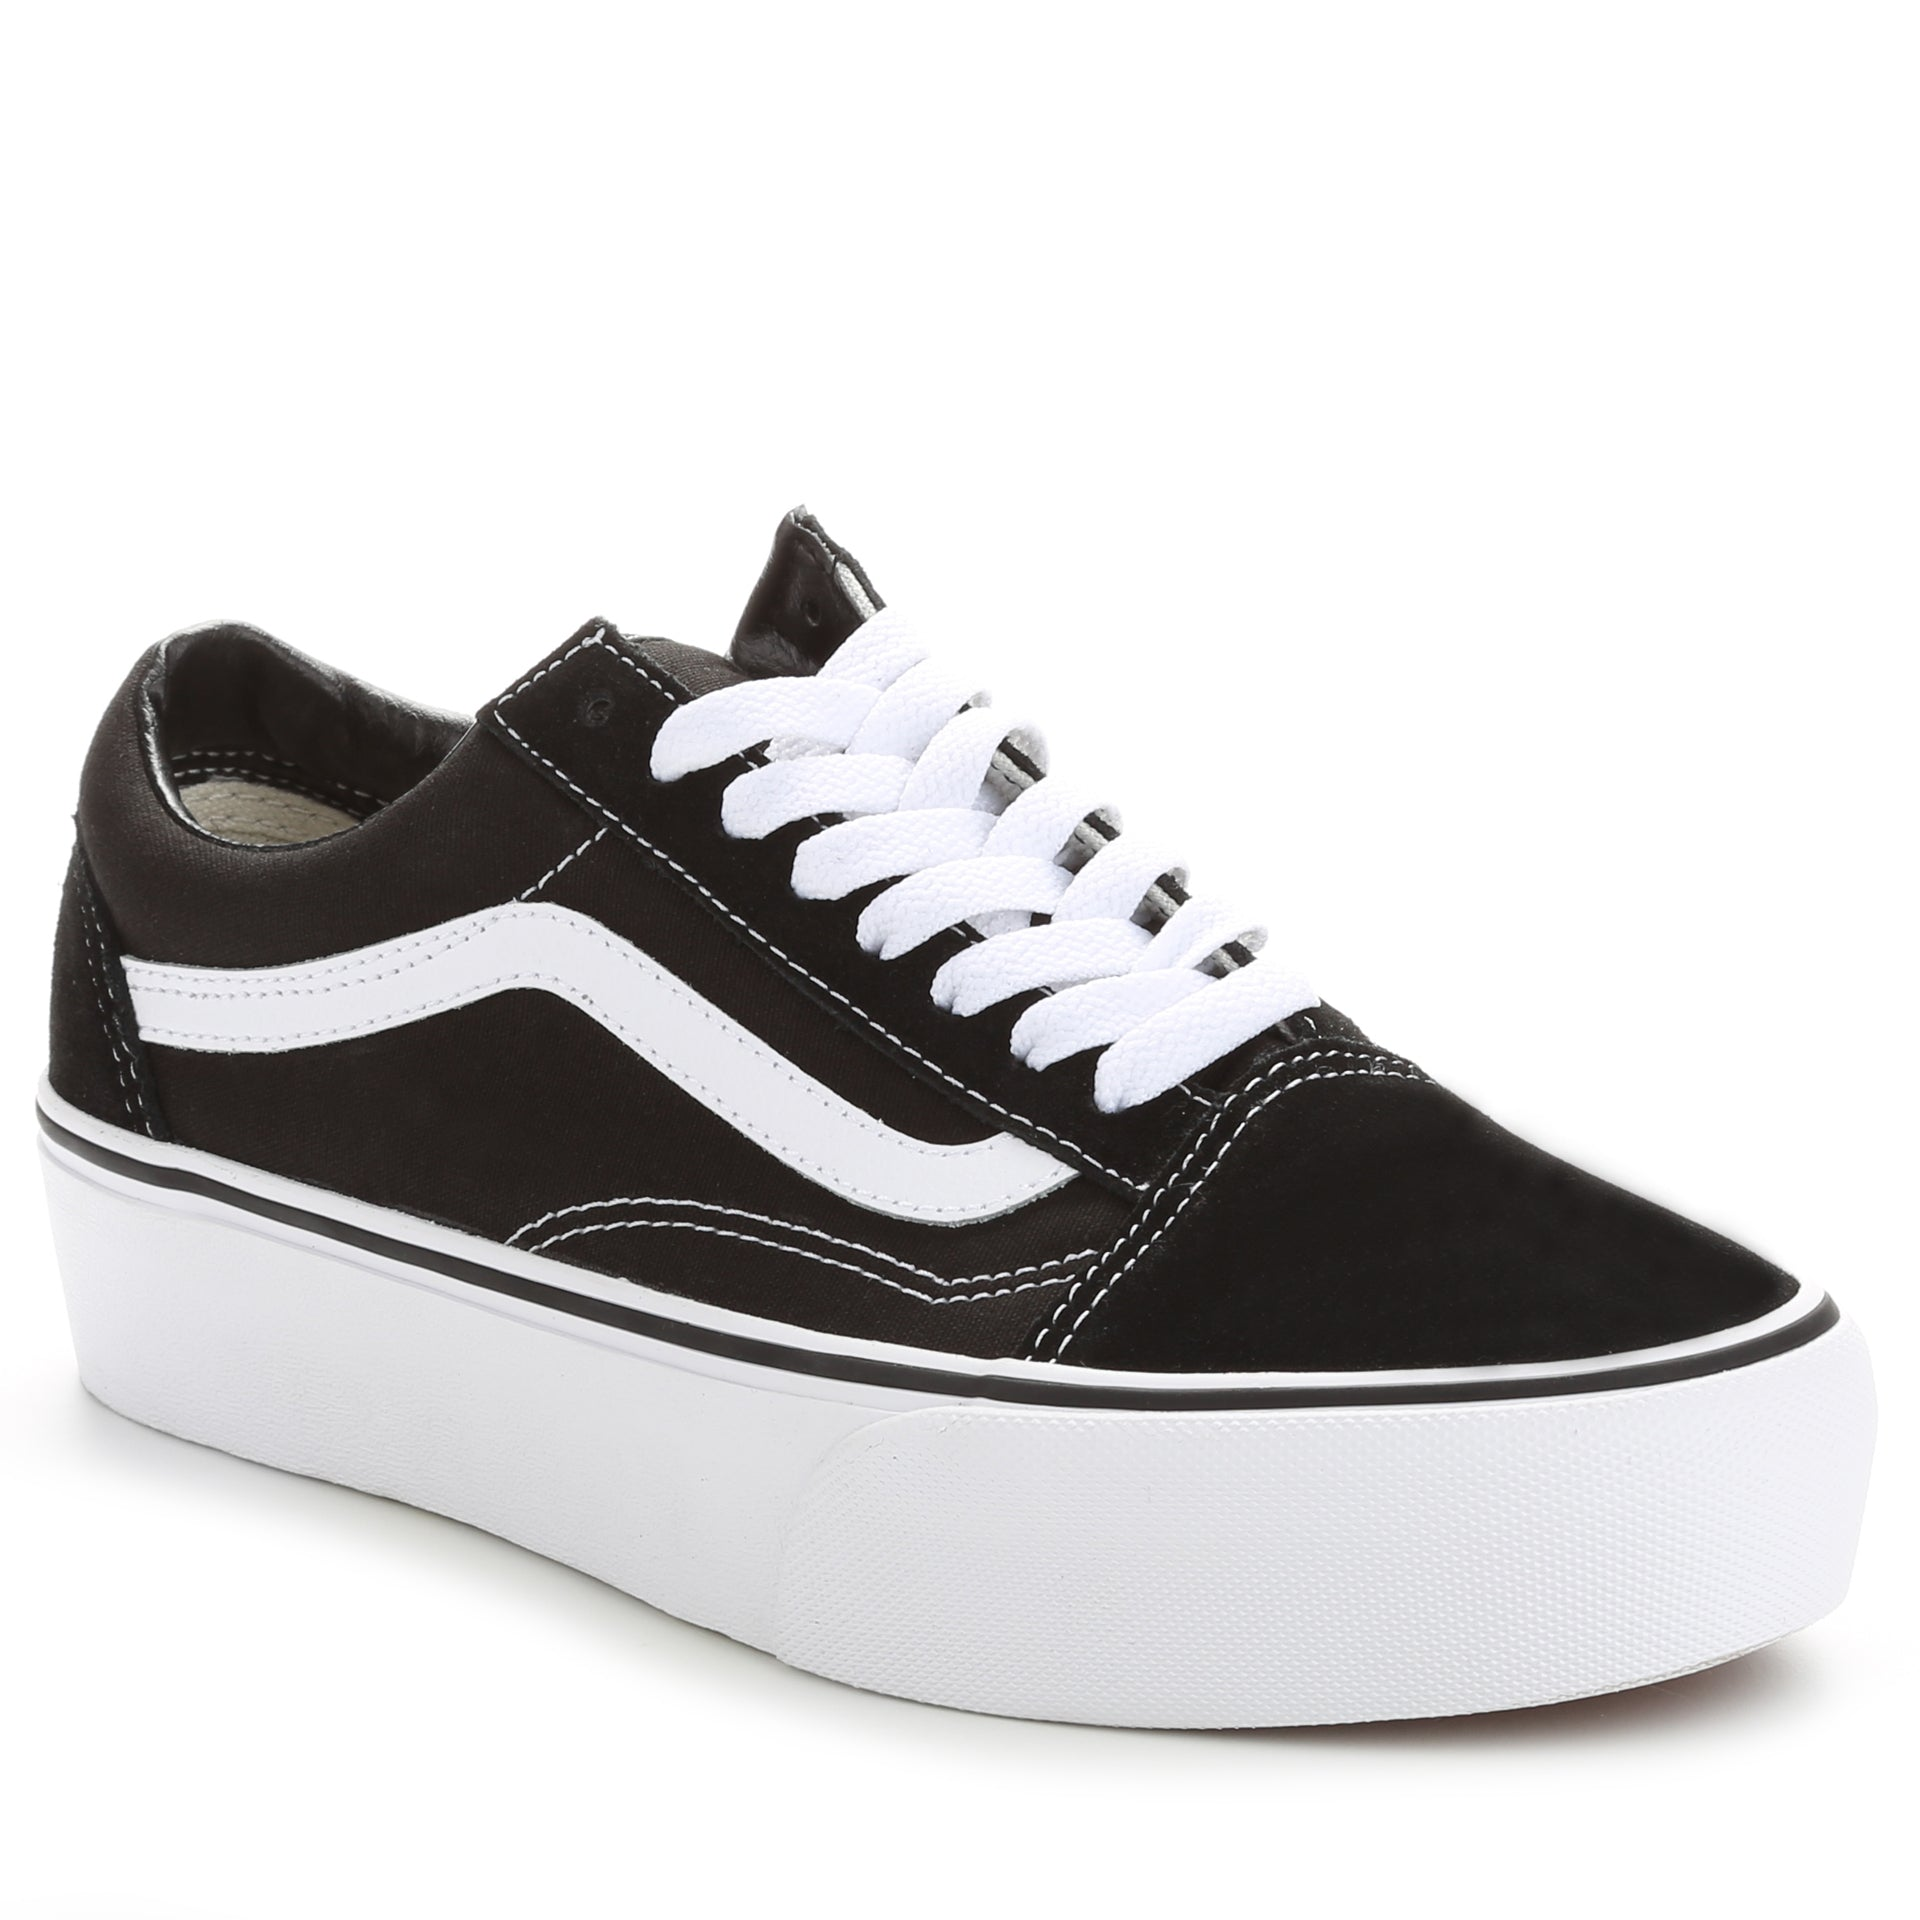 d3d2c833172501 Vans Women s Old Skool Platform - Black White - New Star